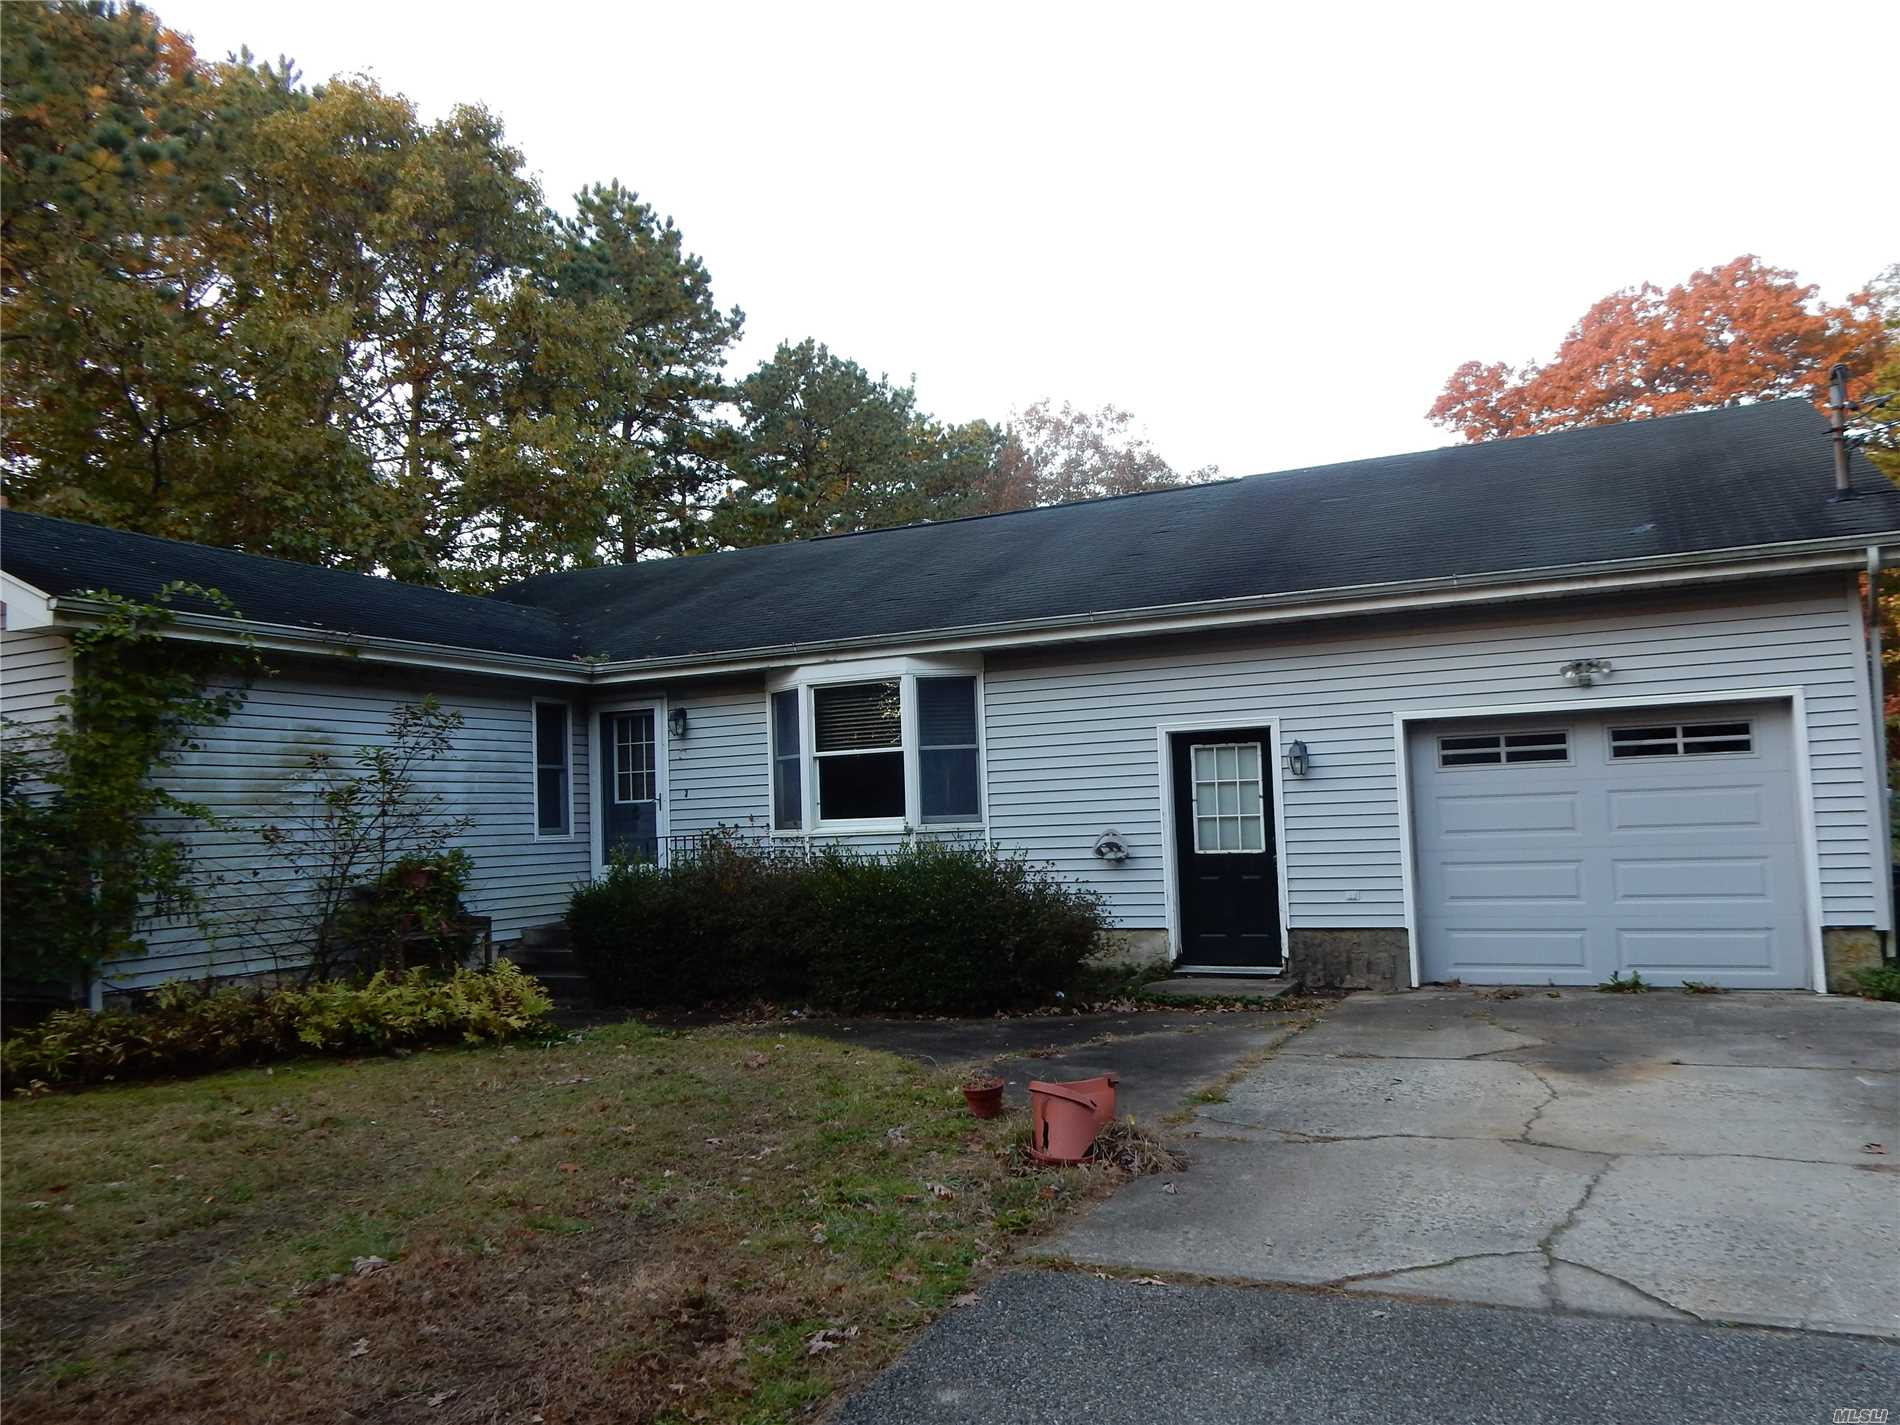 Roomy 3 Bedroom 3 Bath Ranch With Full Basement, 1 Car Garage + Large Detached Horse Barn/Garage. 2.50 Private Acres. Needs Work. Property Is Currently Under Auction Terms. Inspections Not Available, Sold As Is.